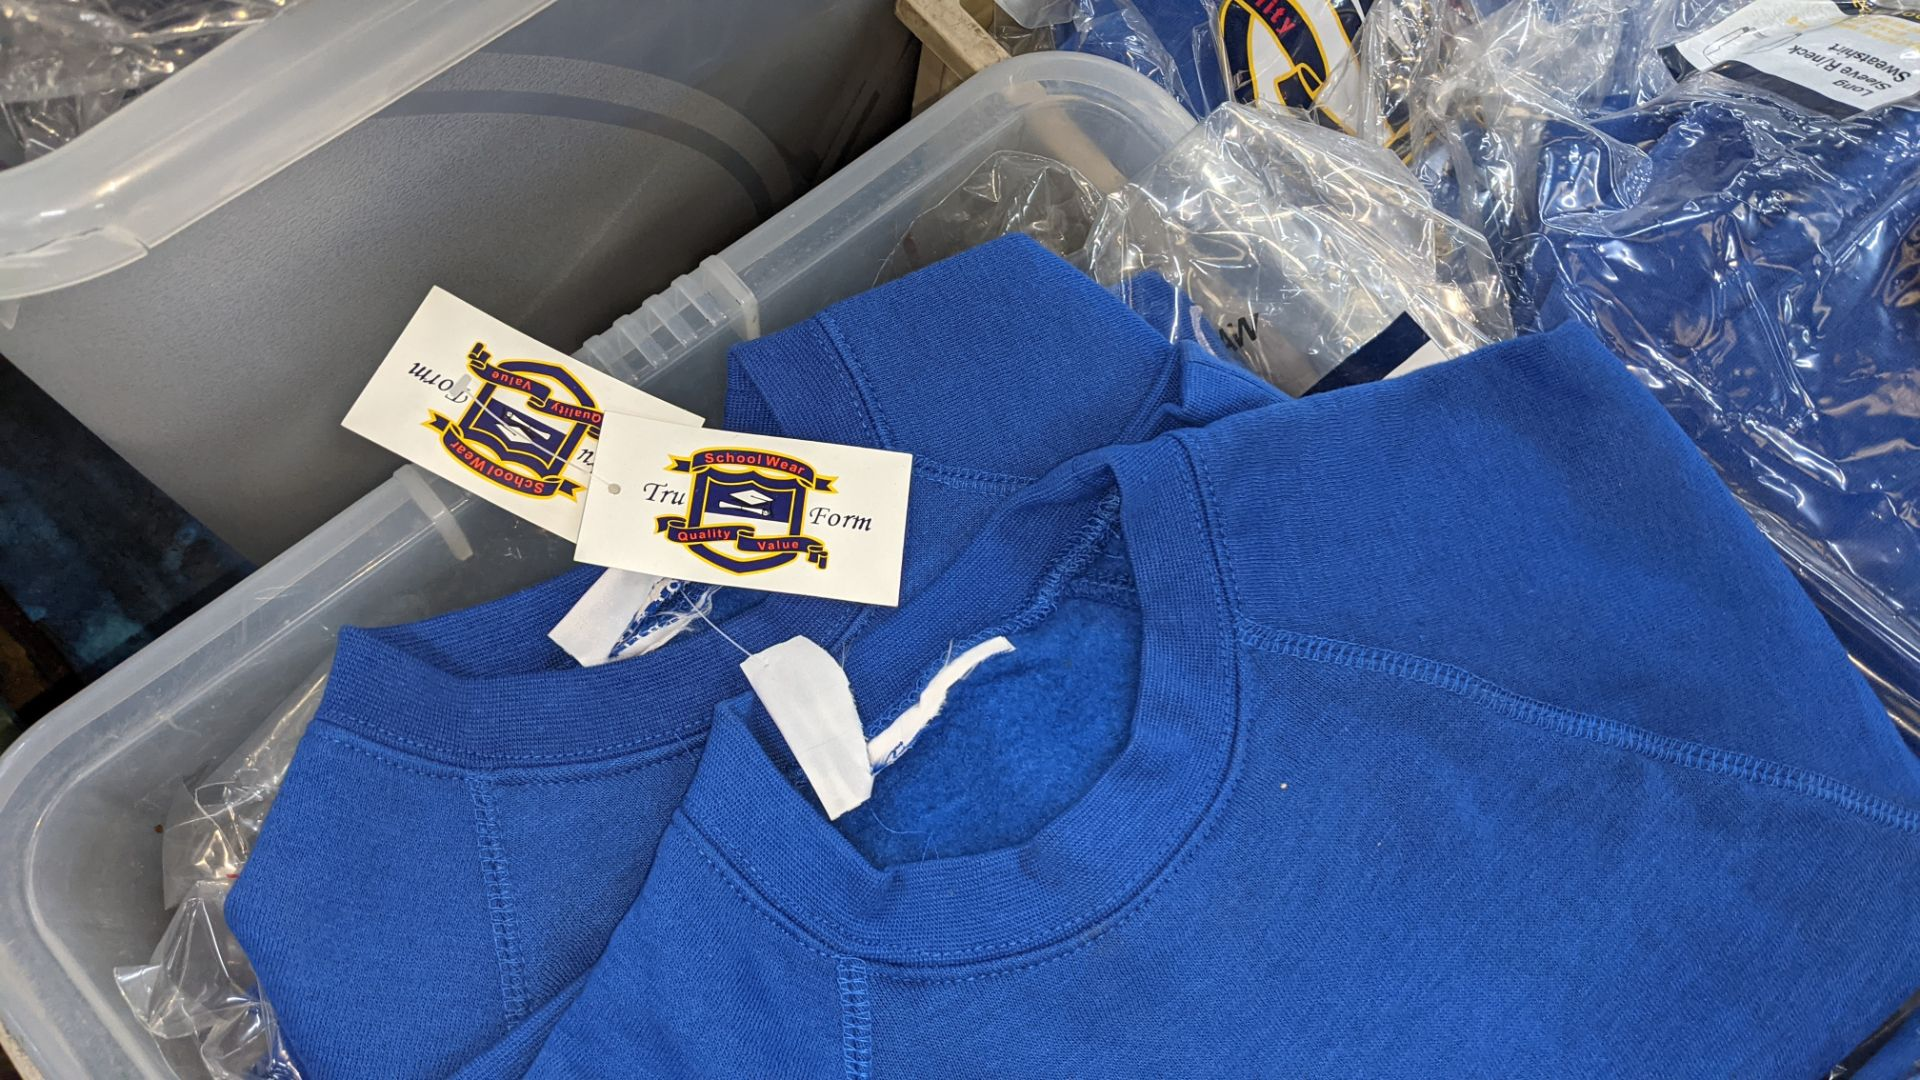 Approx 26 off blue children's sweatshirts & similar - the contents of 1 crate. NB crate excluded - Image 4 of 4